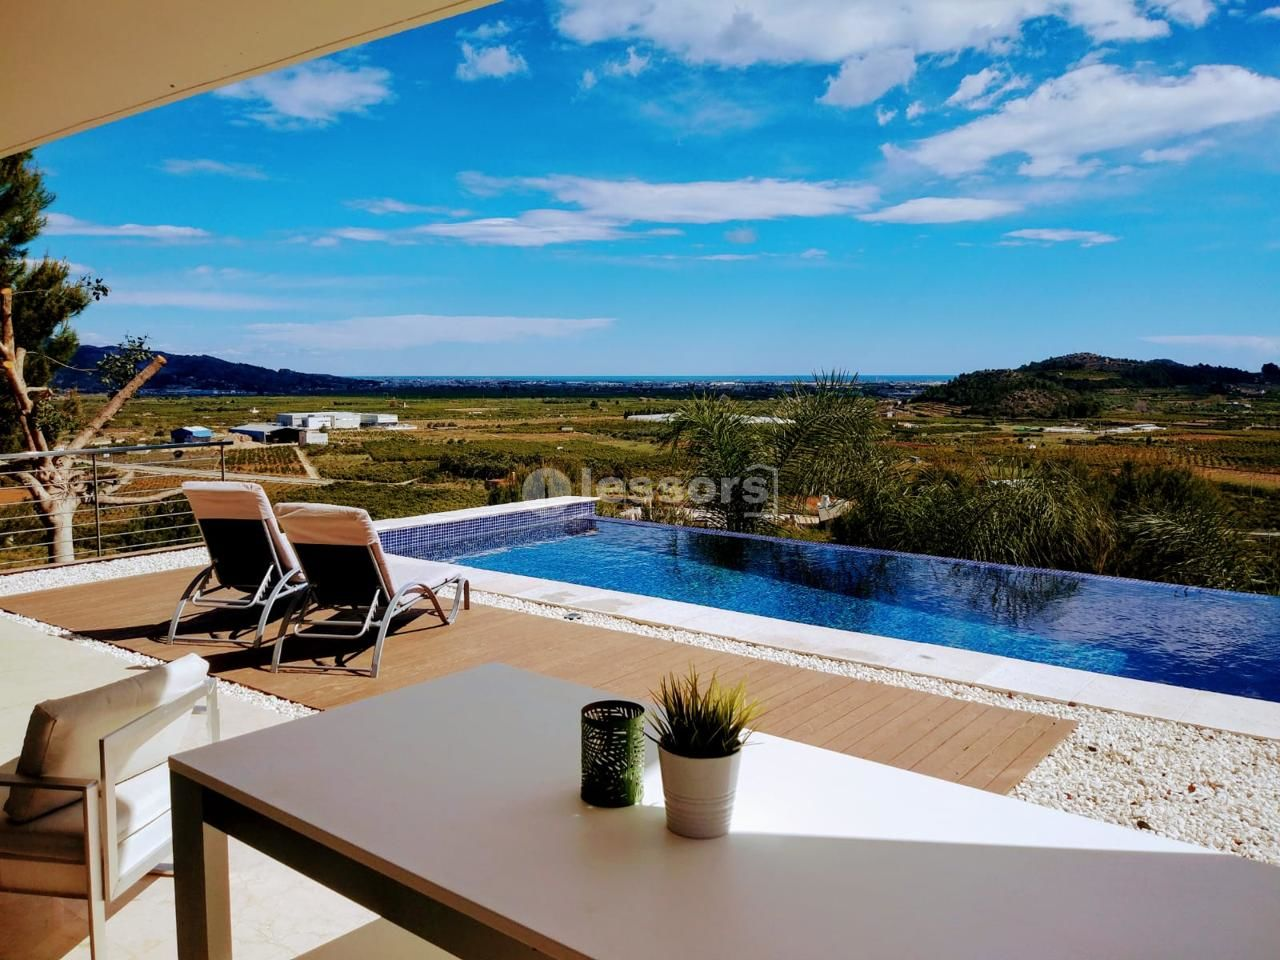 Lloguer Casa en Ador. A great opportunity to purchase or rent long term a very modern